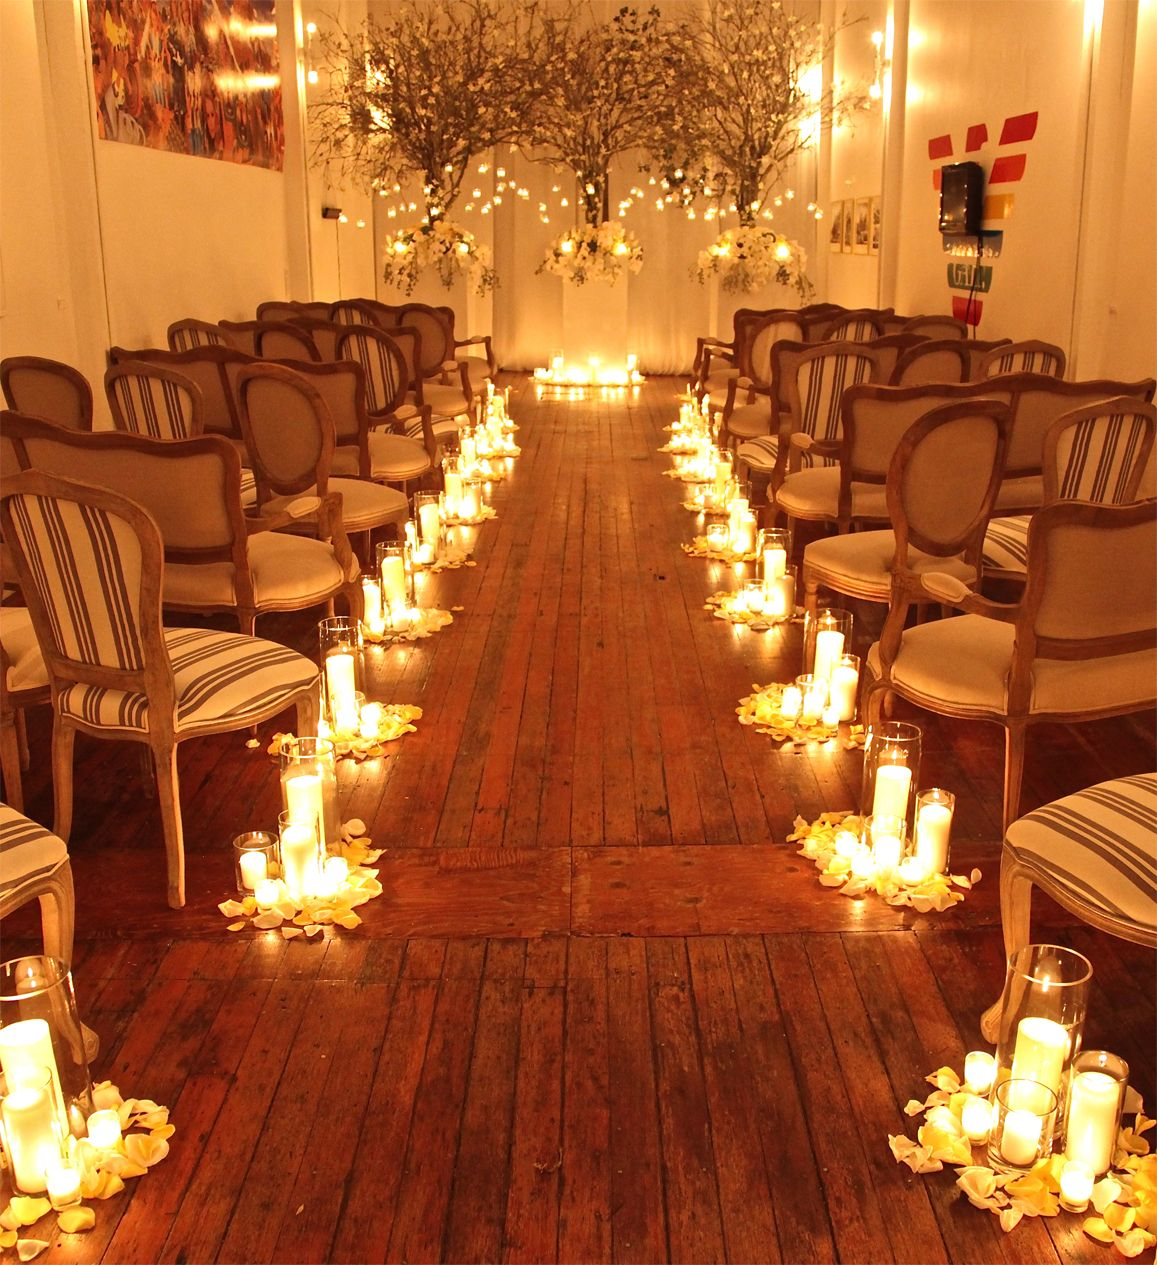 Indoor Wedding: Take #2 Of The Indoor Forest With Fairy Light Aisle